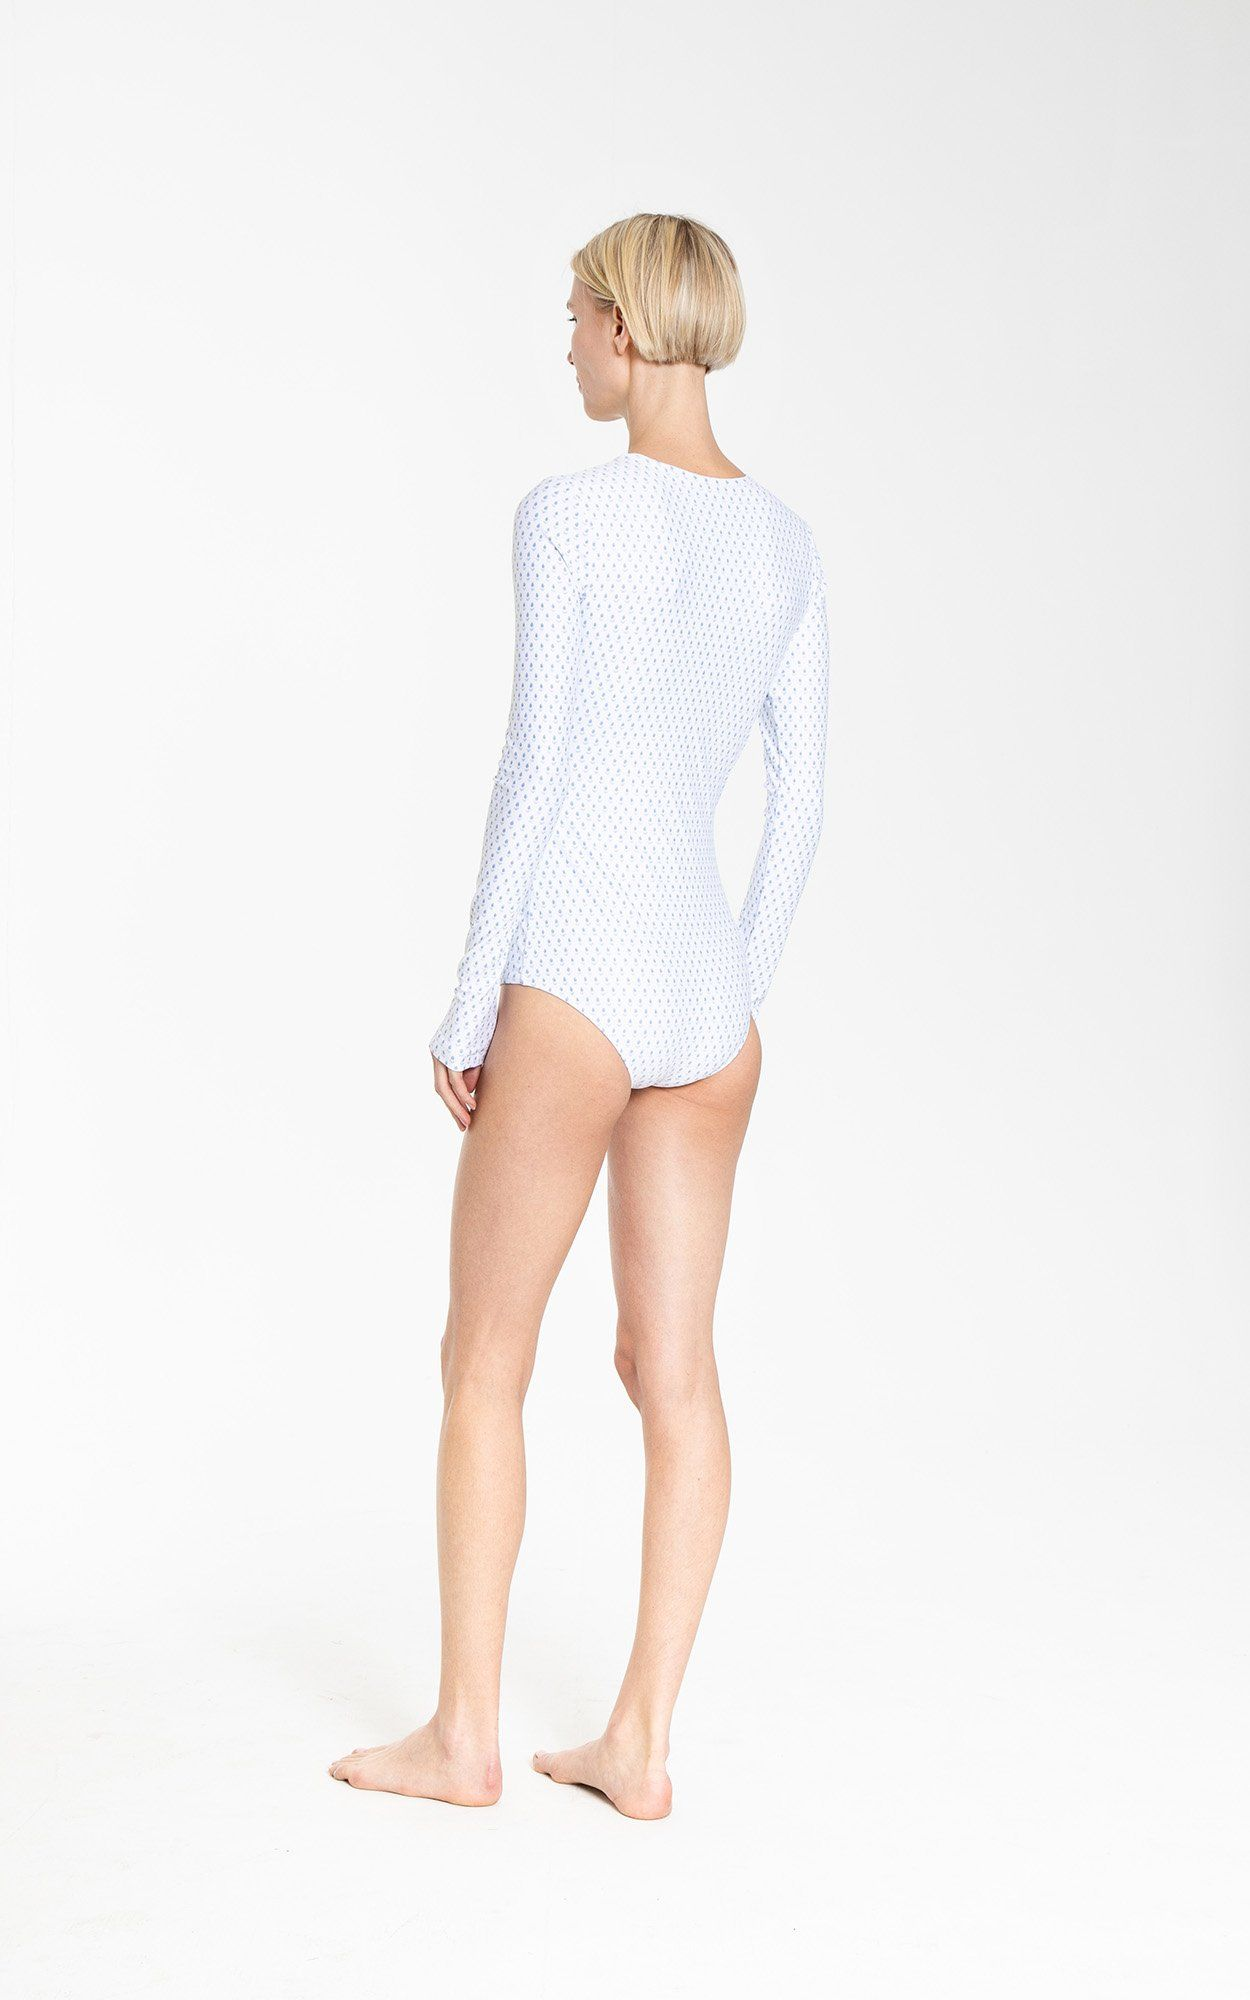 Long-Sleeved Front Zip Swimsuit - Tiny Tulips